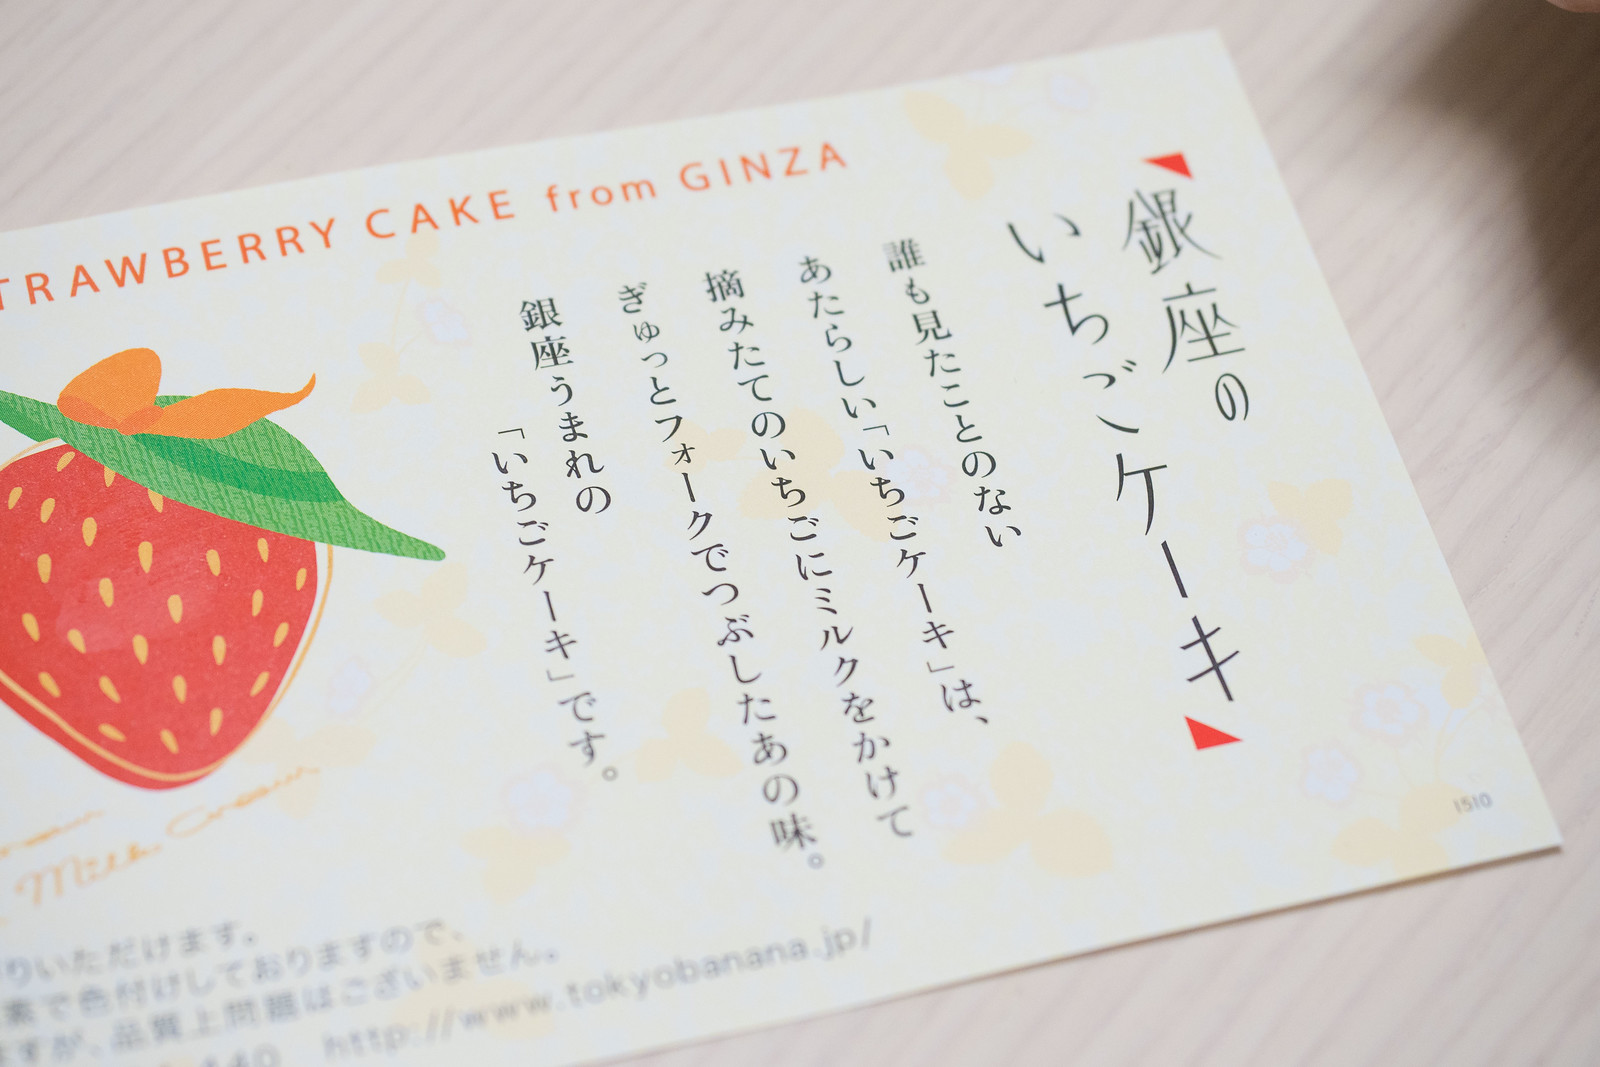 STRAWBERRY_CAKE_from_GINZA-11